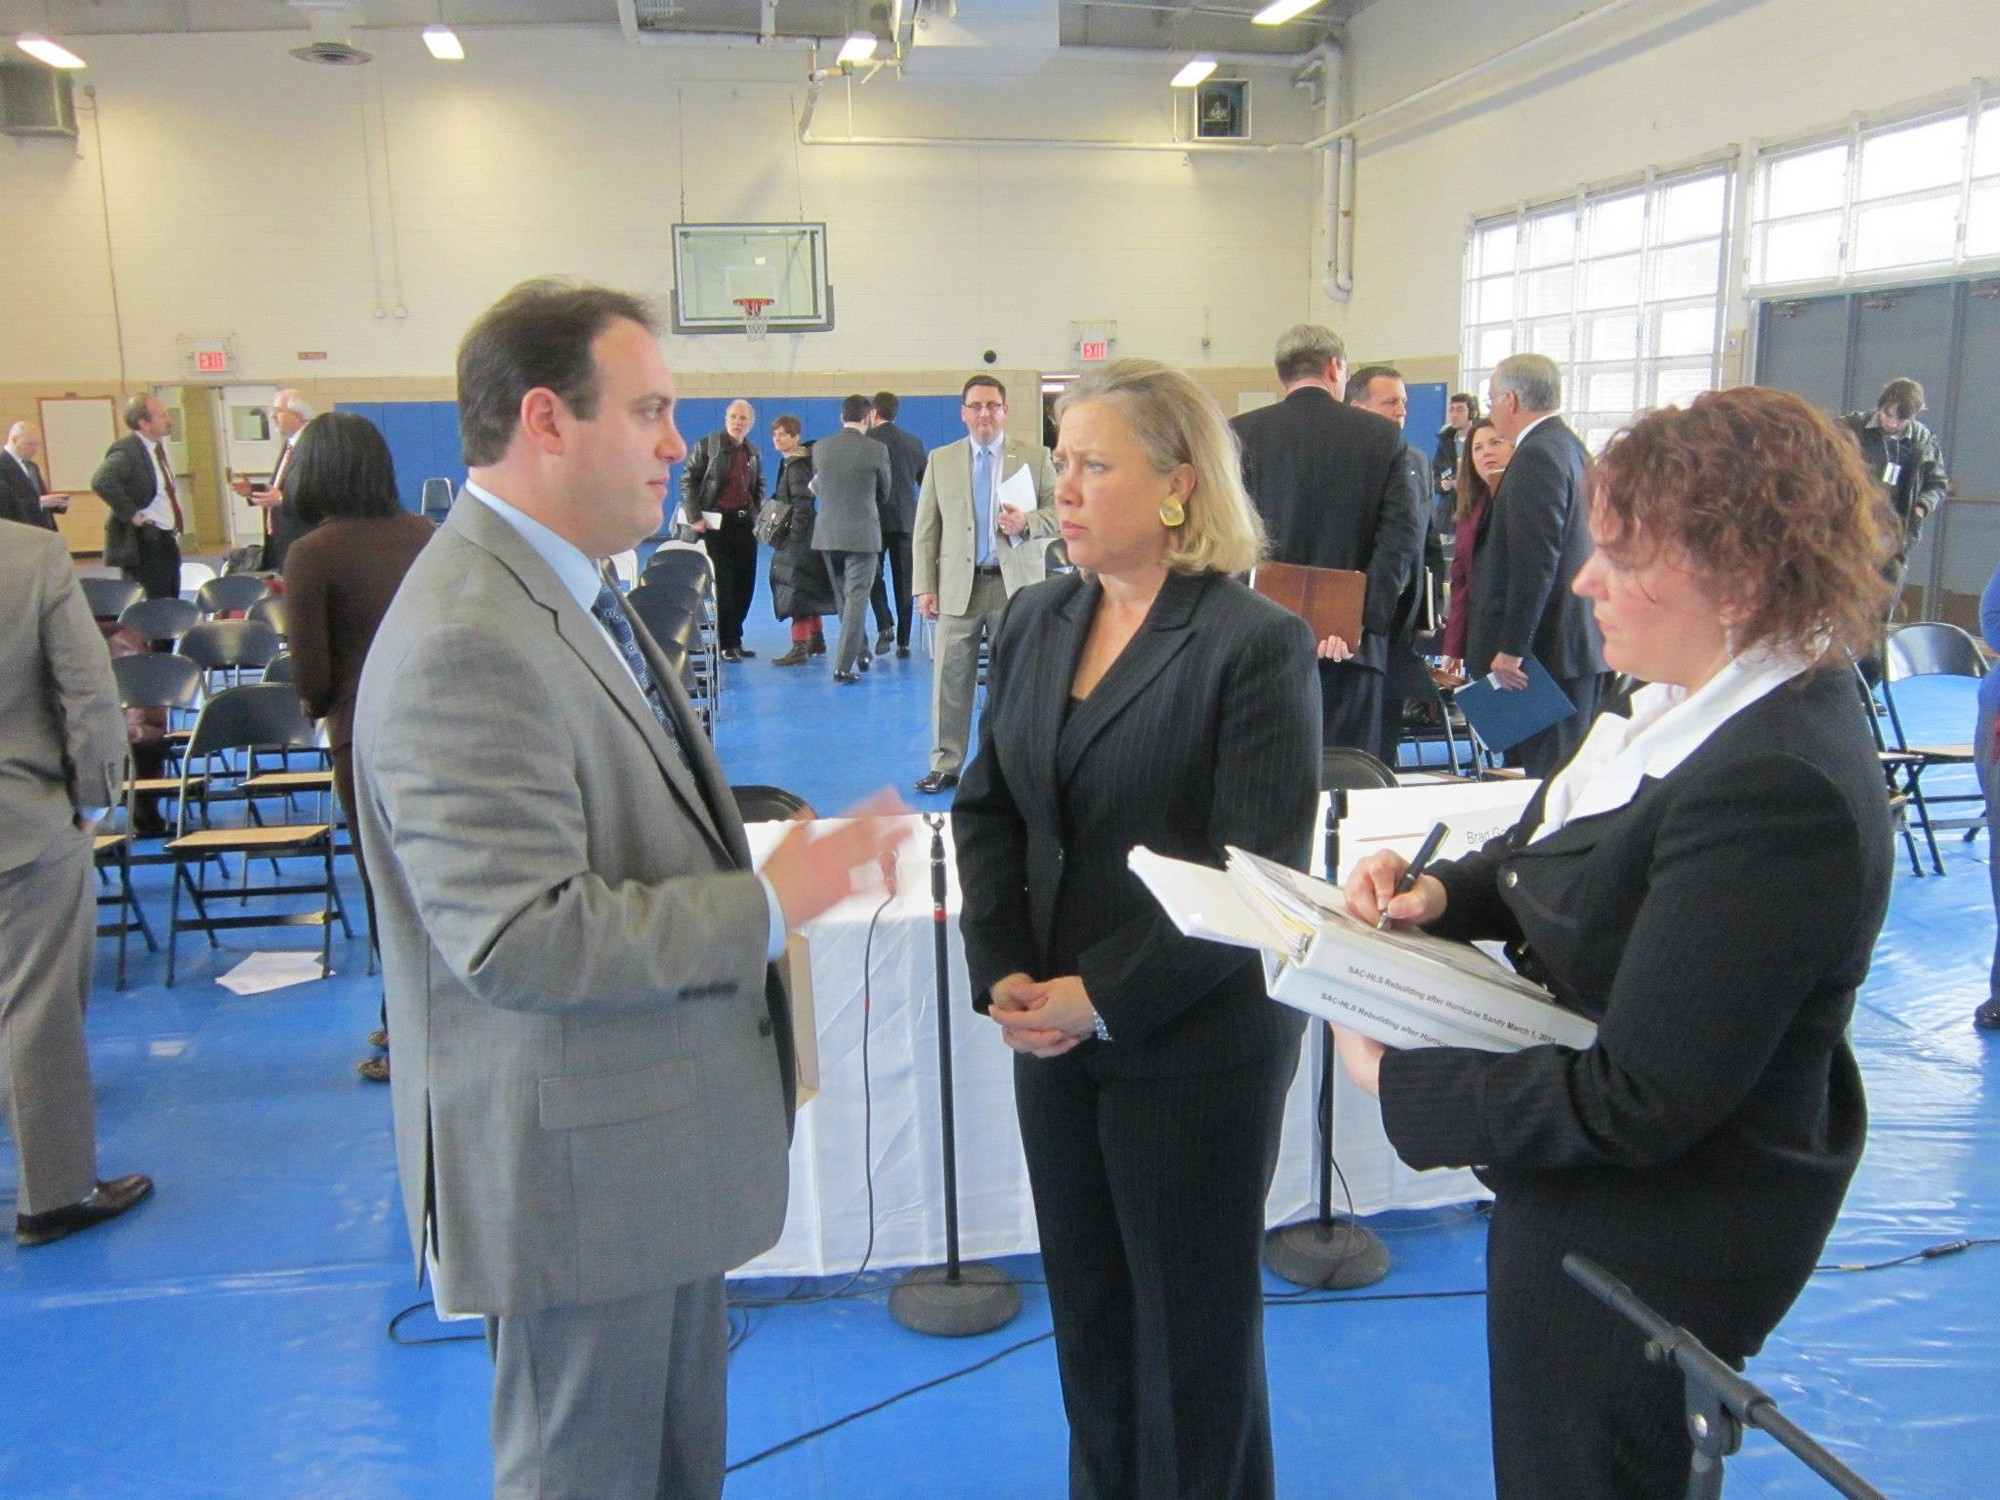 City Council President Scott Mandel spoke with U.S. Sen. Mary L. Landrieu during a Senate Field Hearing in Staten Island last month to evaluate the efforts underway to rebuild after Hurricane Sandy.